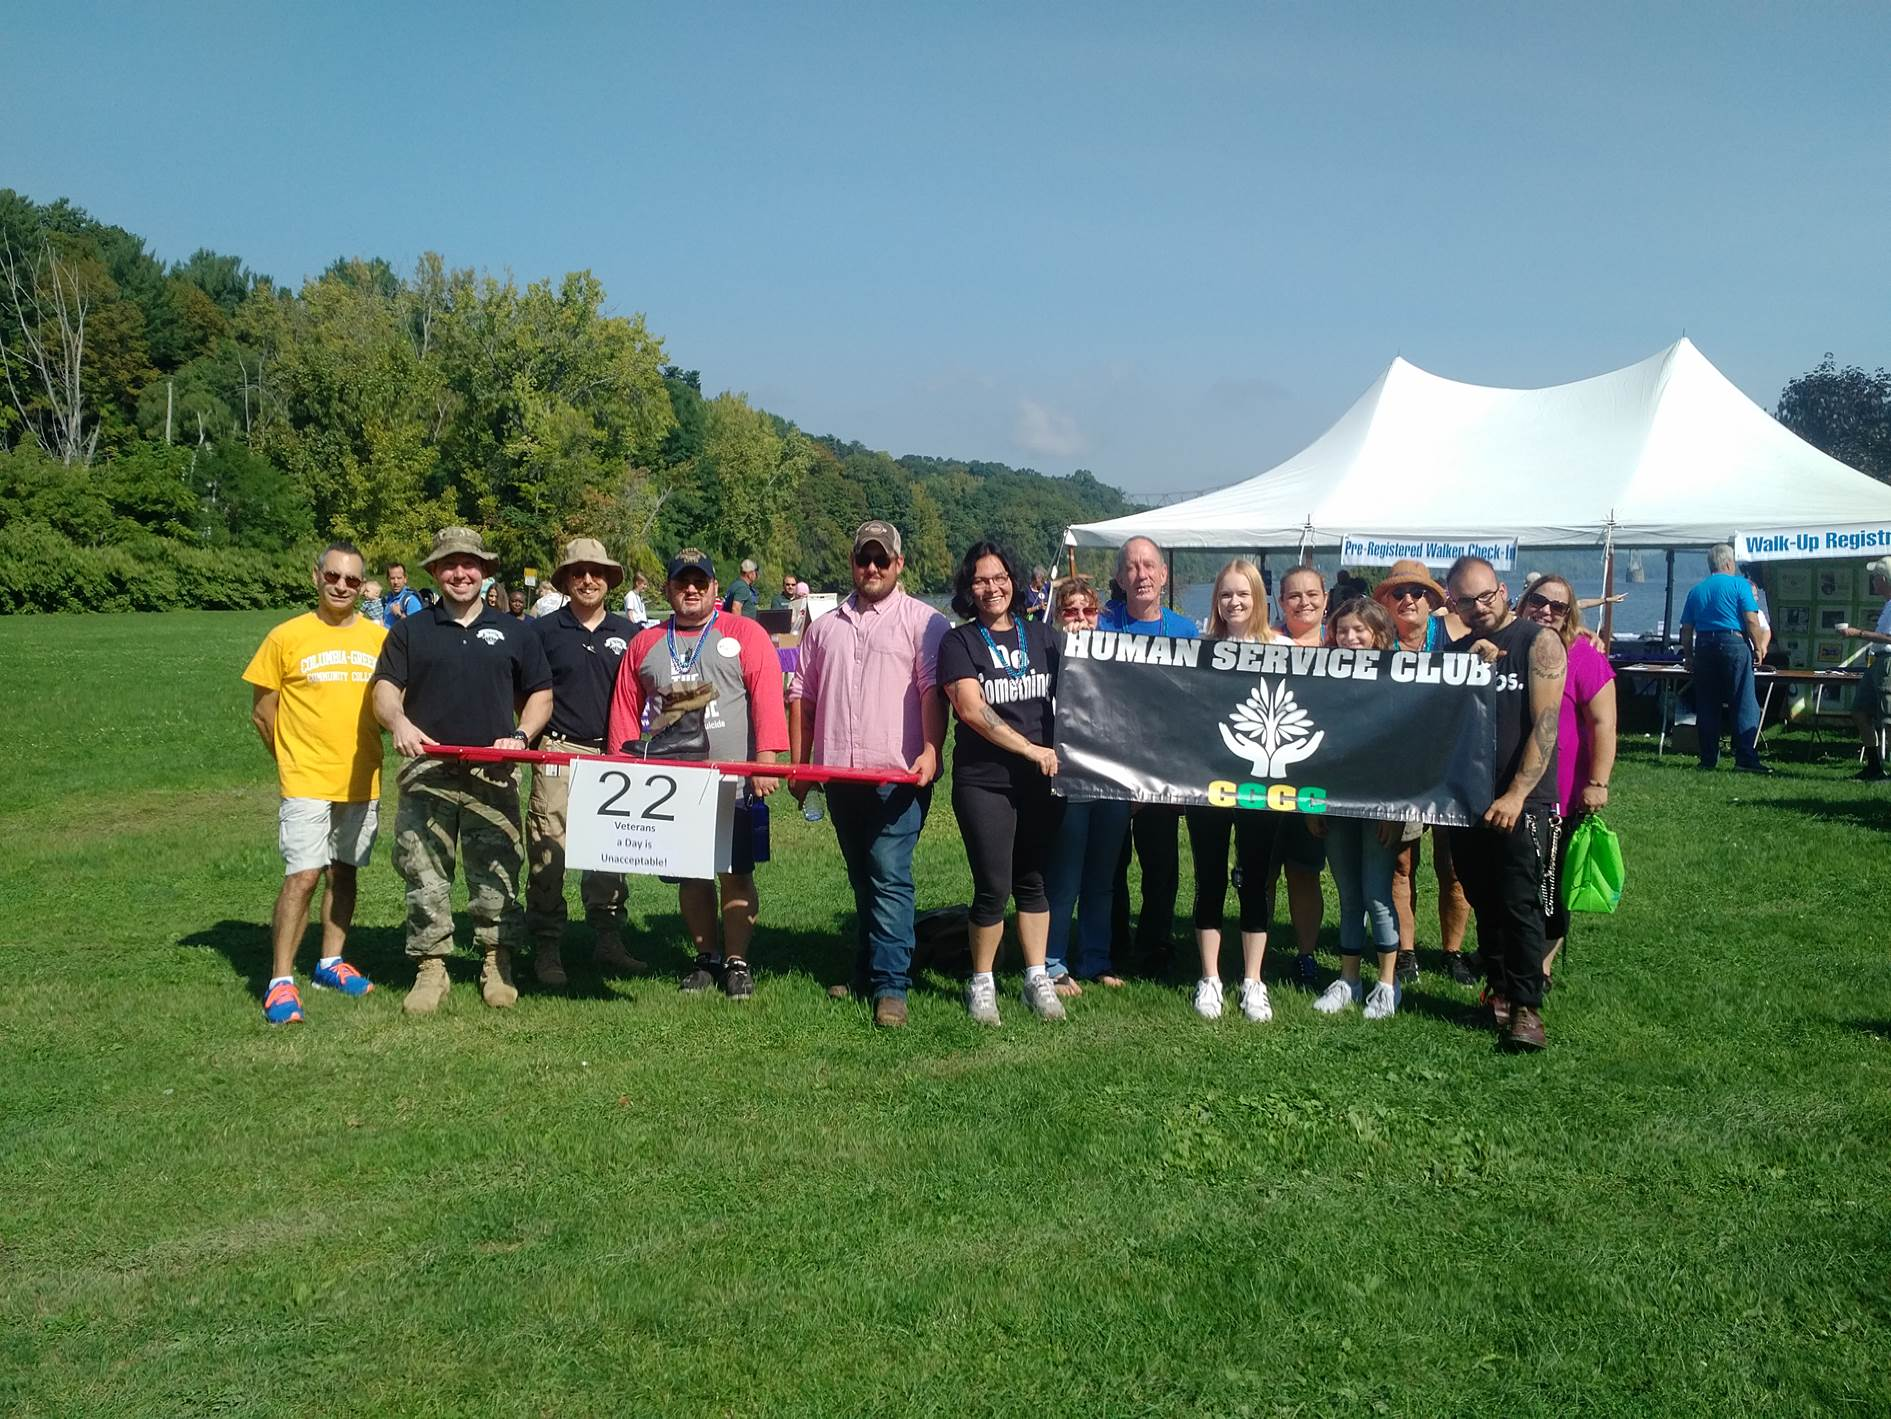 Group of students and professors at an outdoor fundraising walk